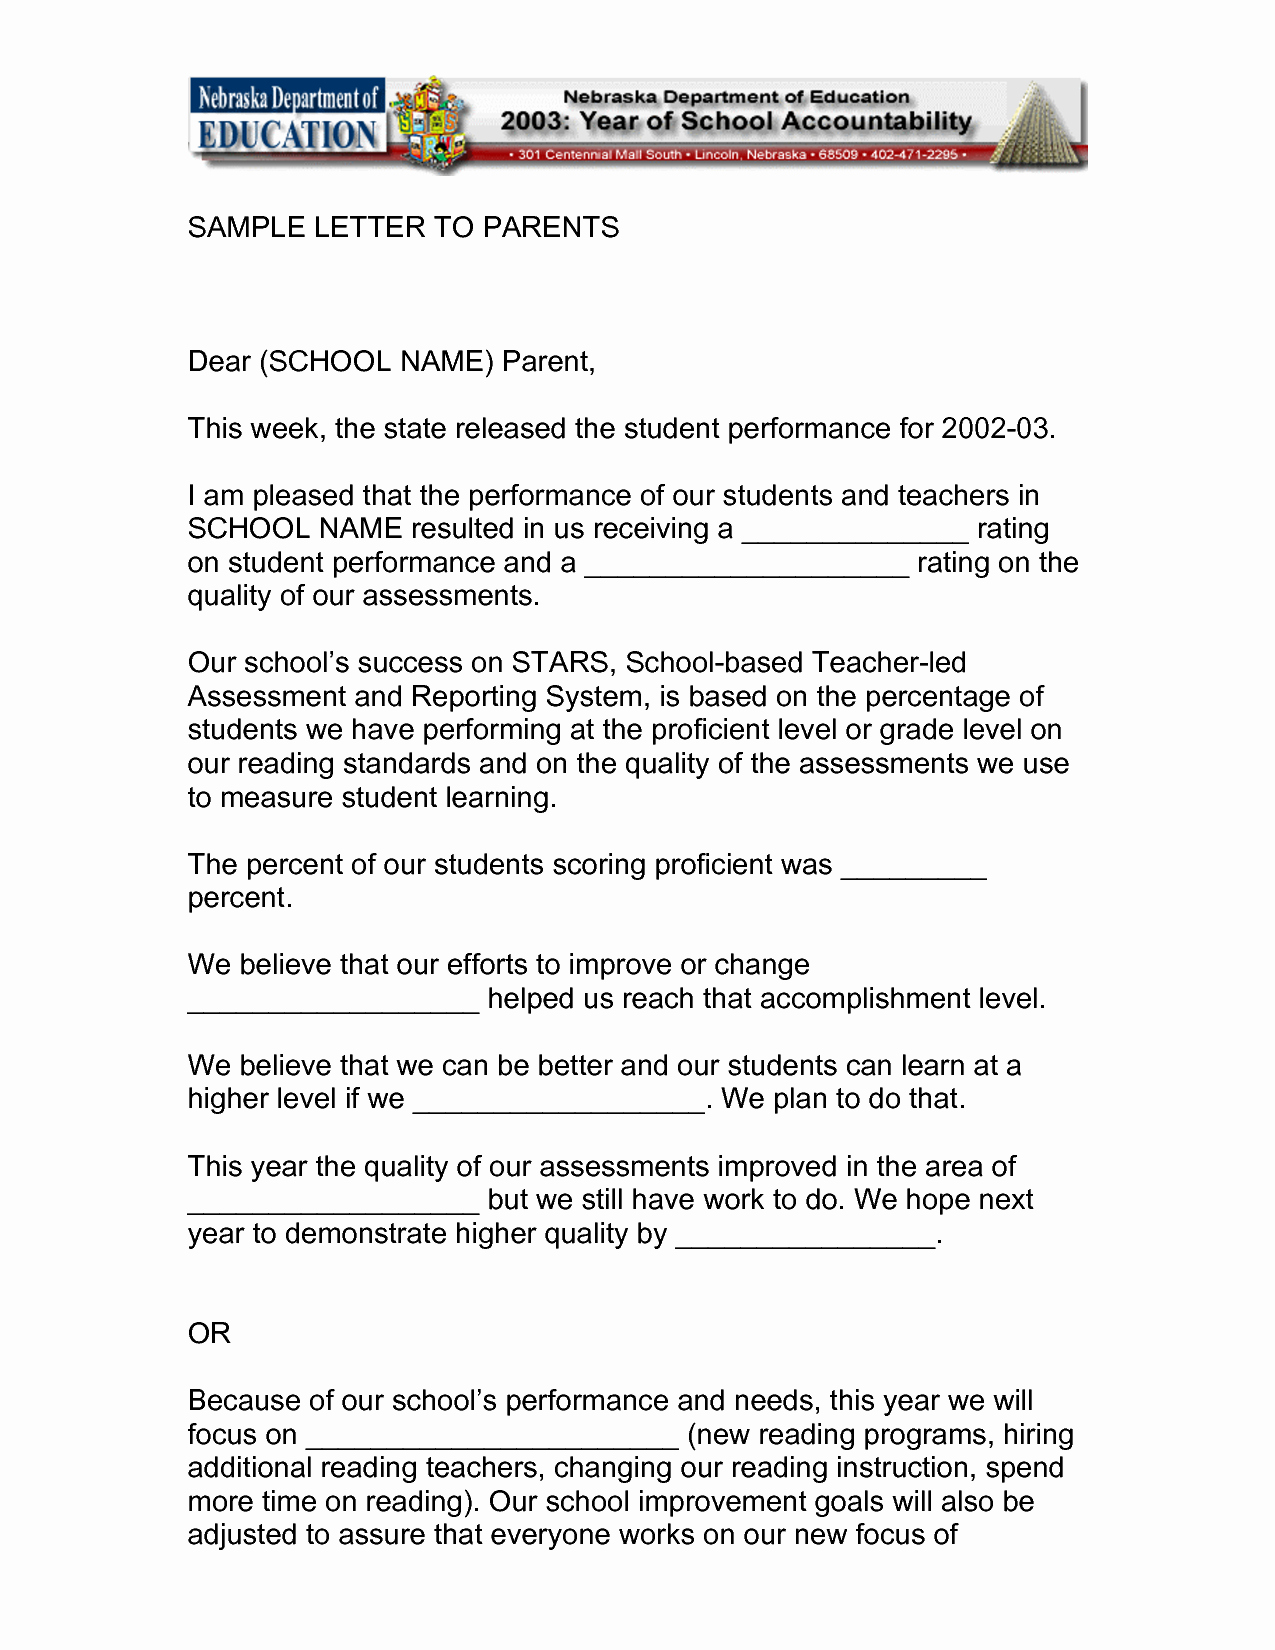 Letters to Parents Template Fresh Dear Parents Letter From Teacher Sample